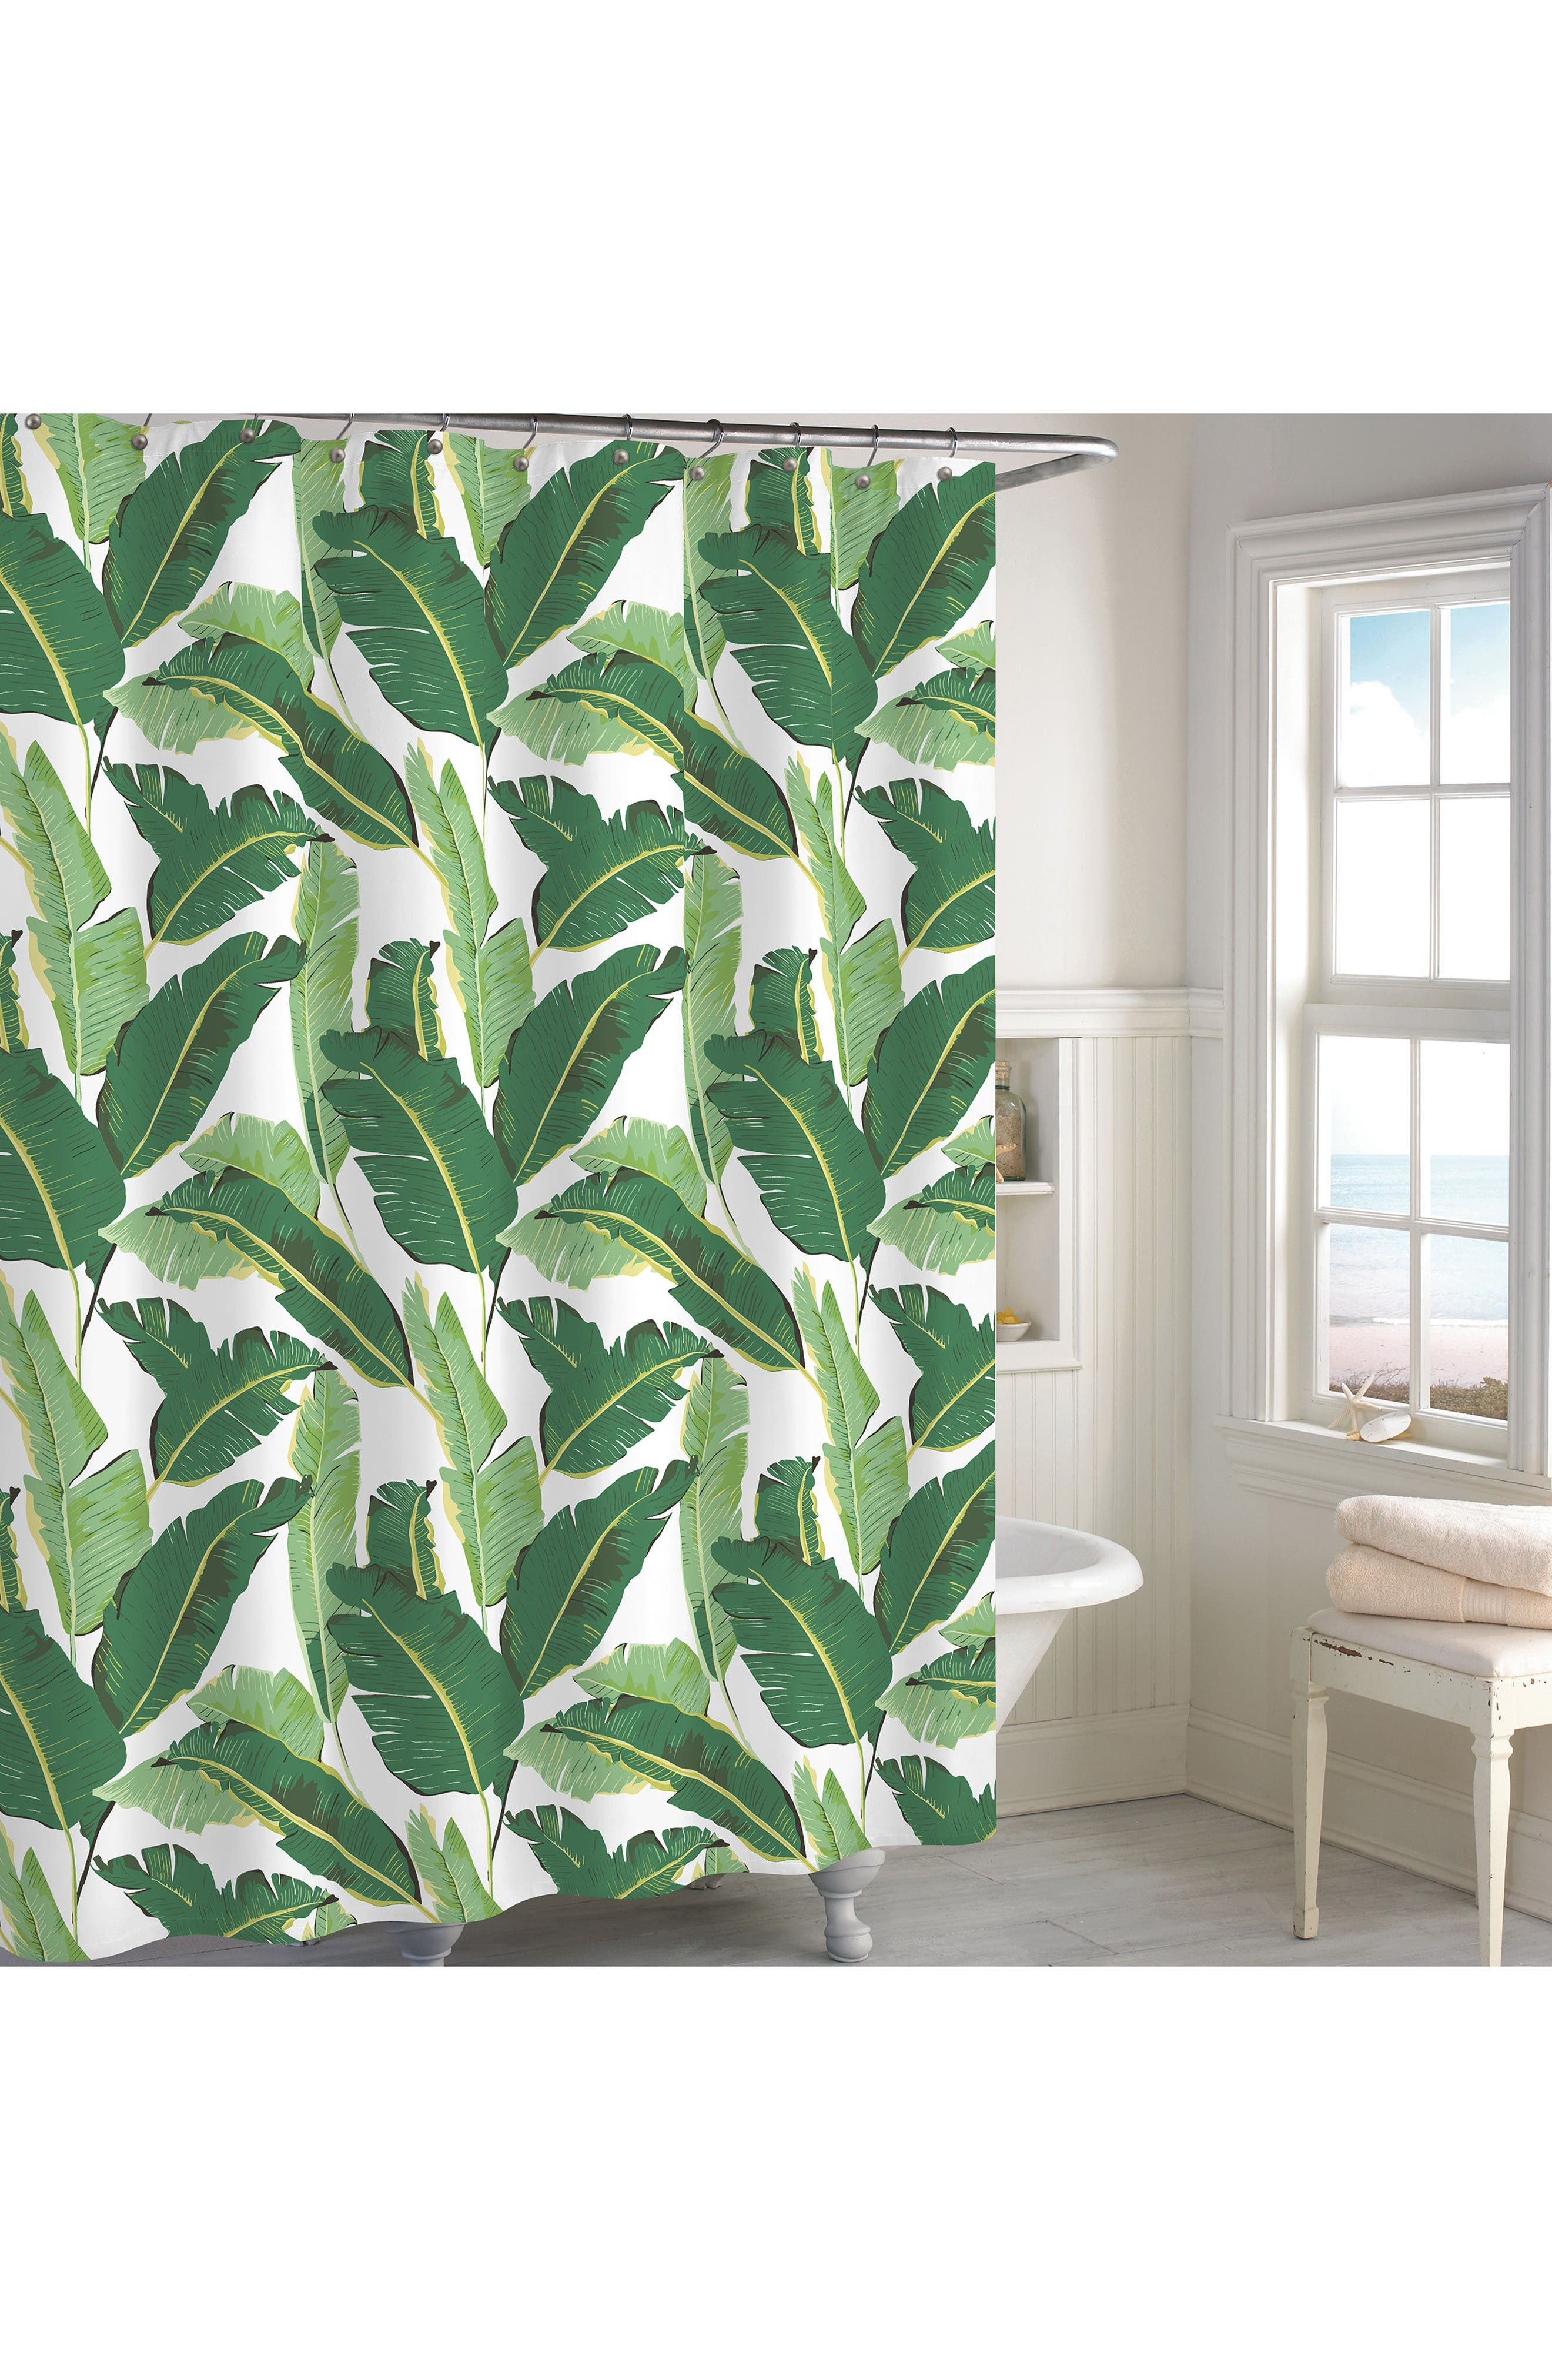 Alternate Image 1 Selected - Destinations Miami Leaf Shower Curtain